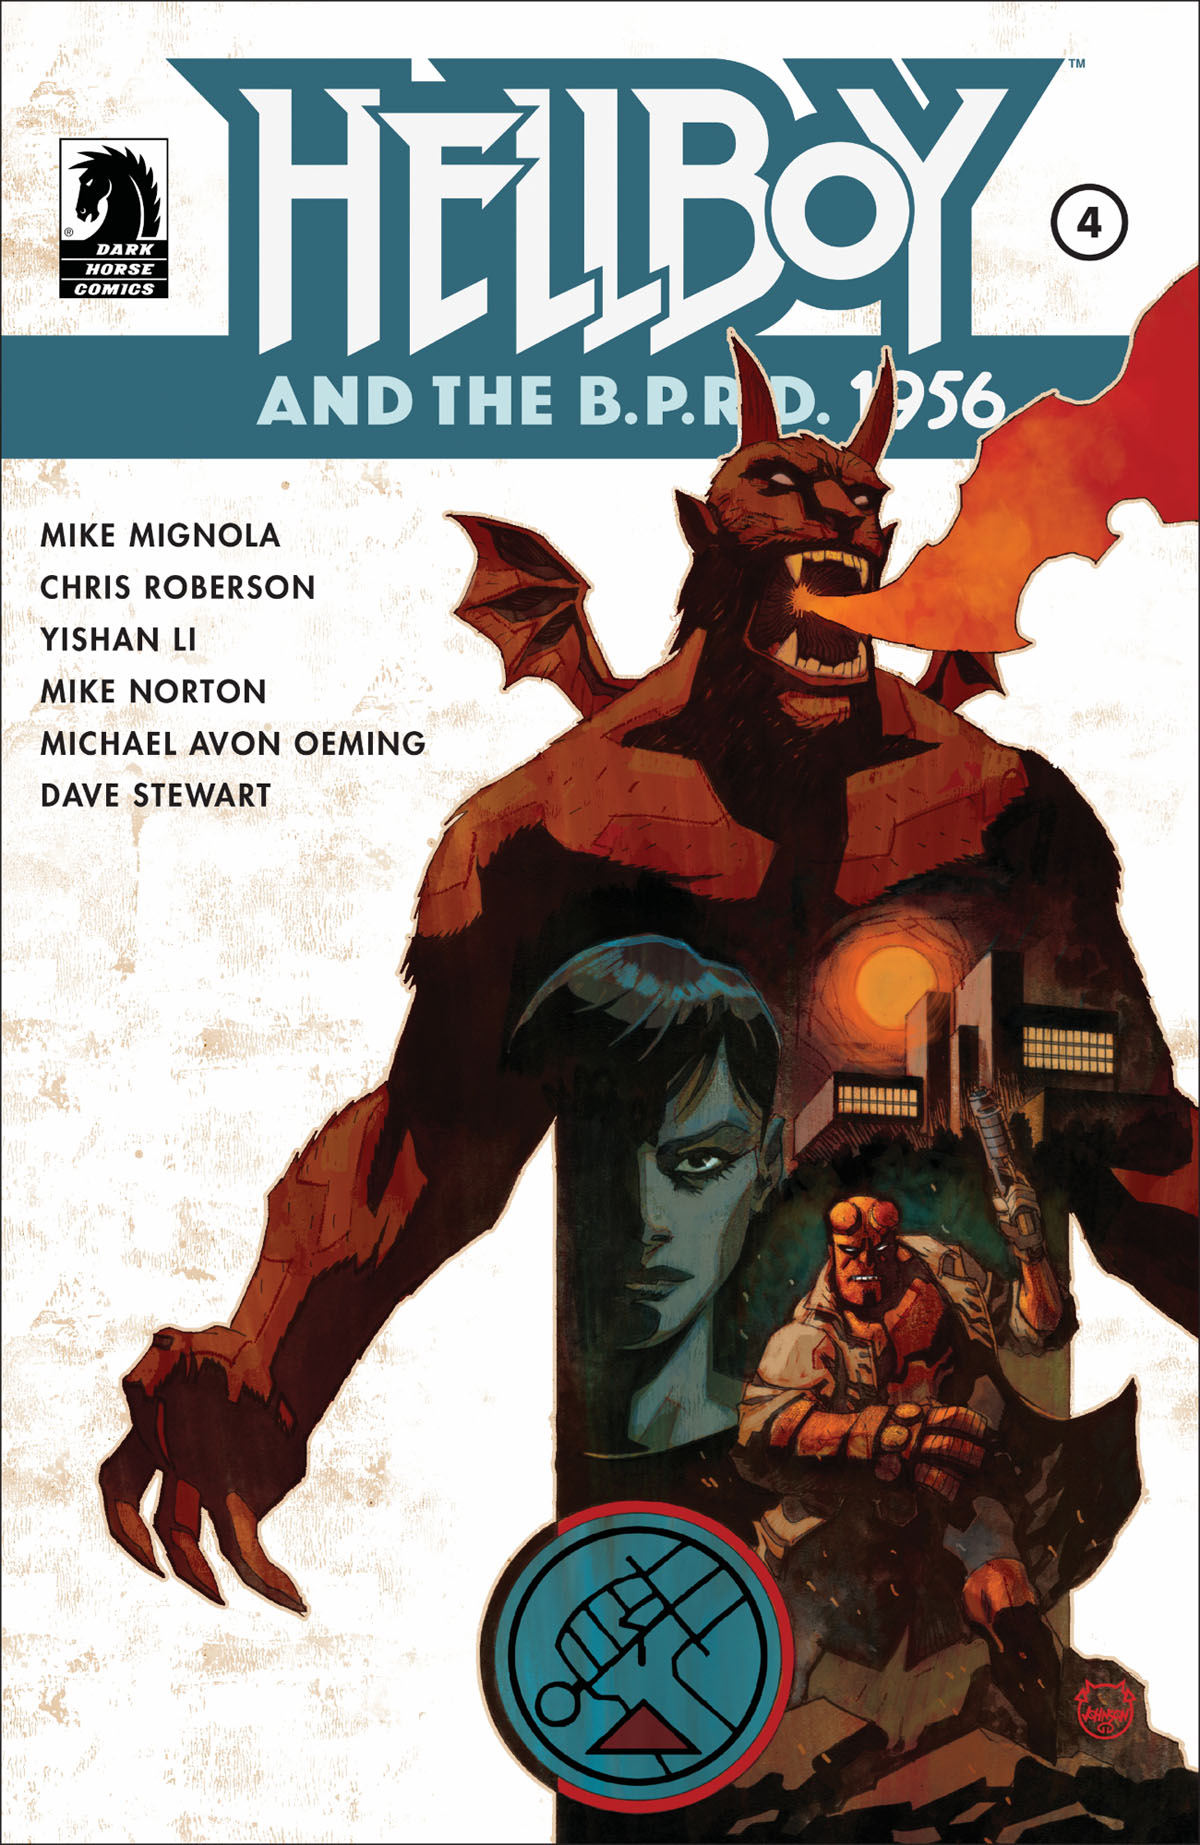 Hellboy and the BPRD 1956 #4 cover